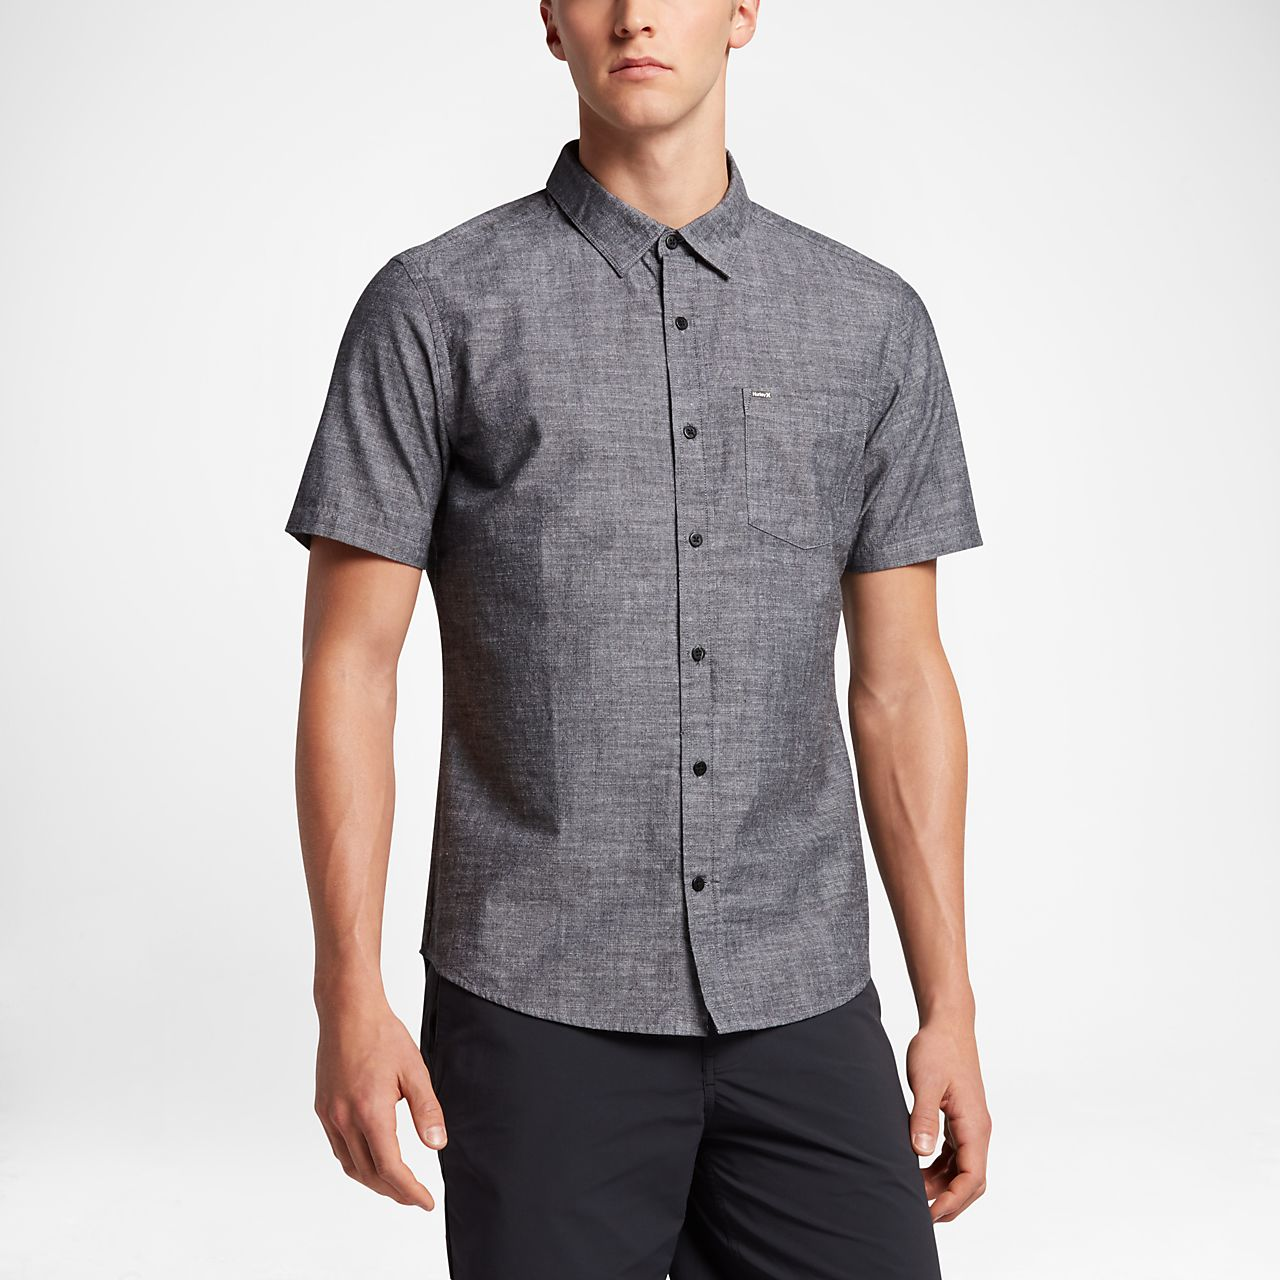 Hurley One And Only Men's Short Sleeve Shirt. Nike.com